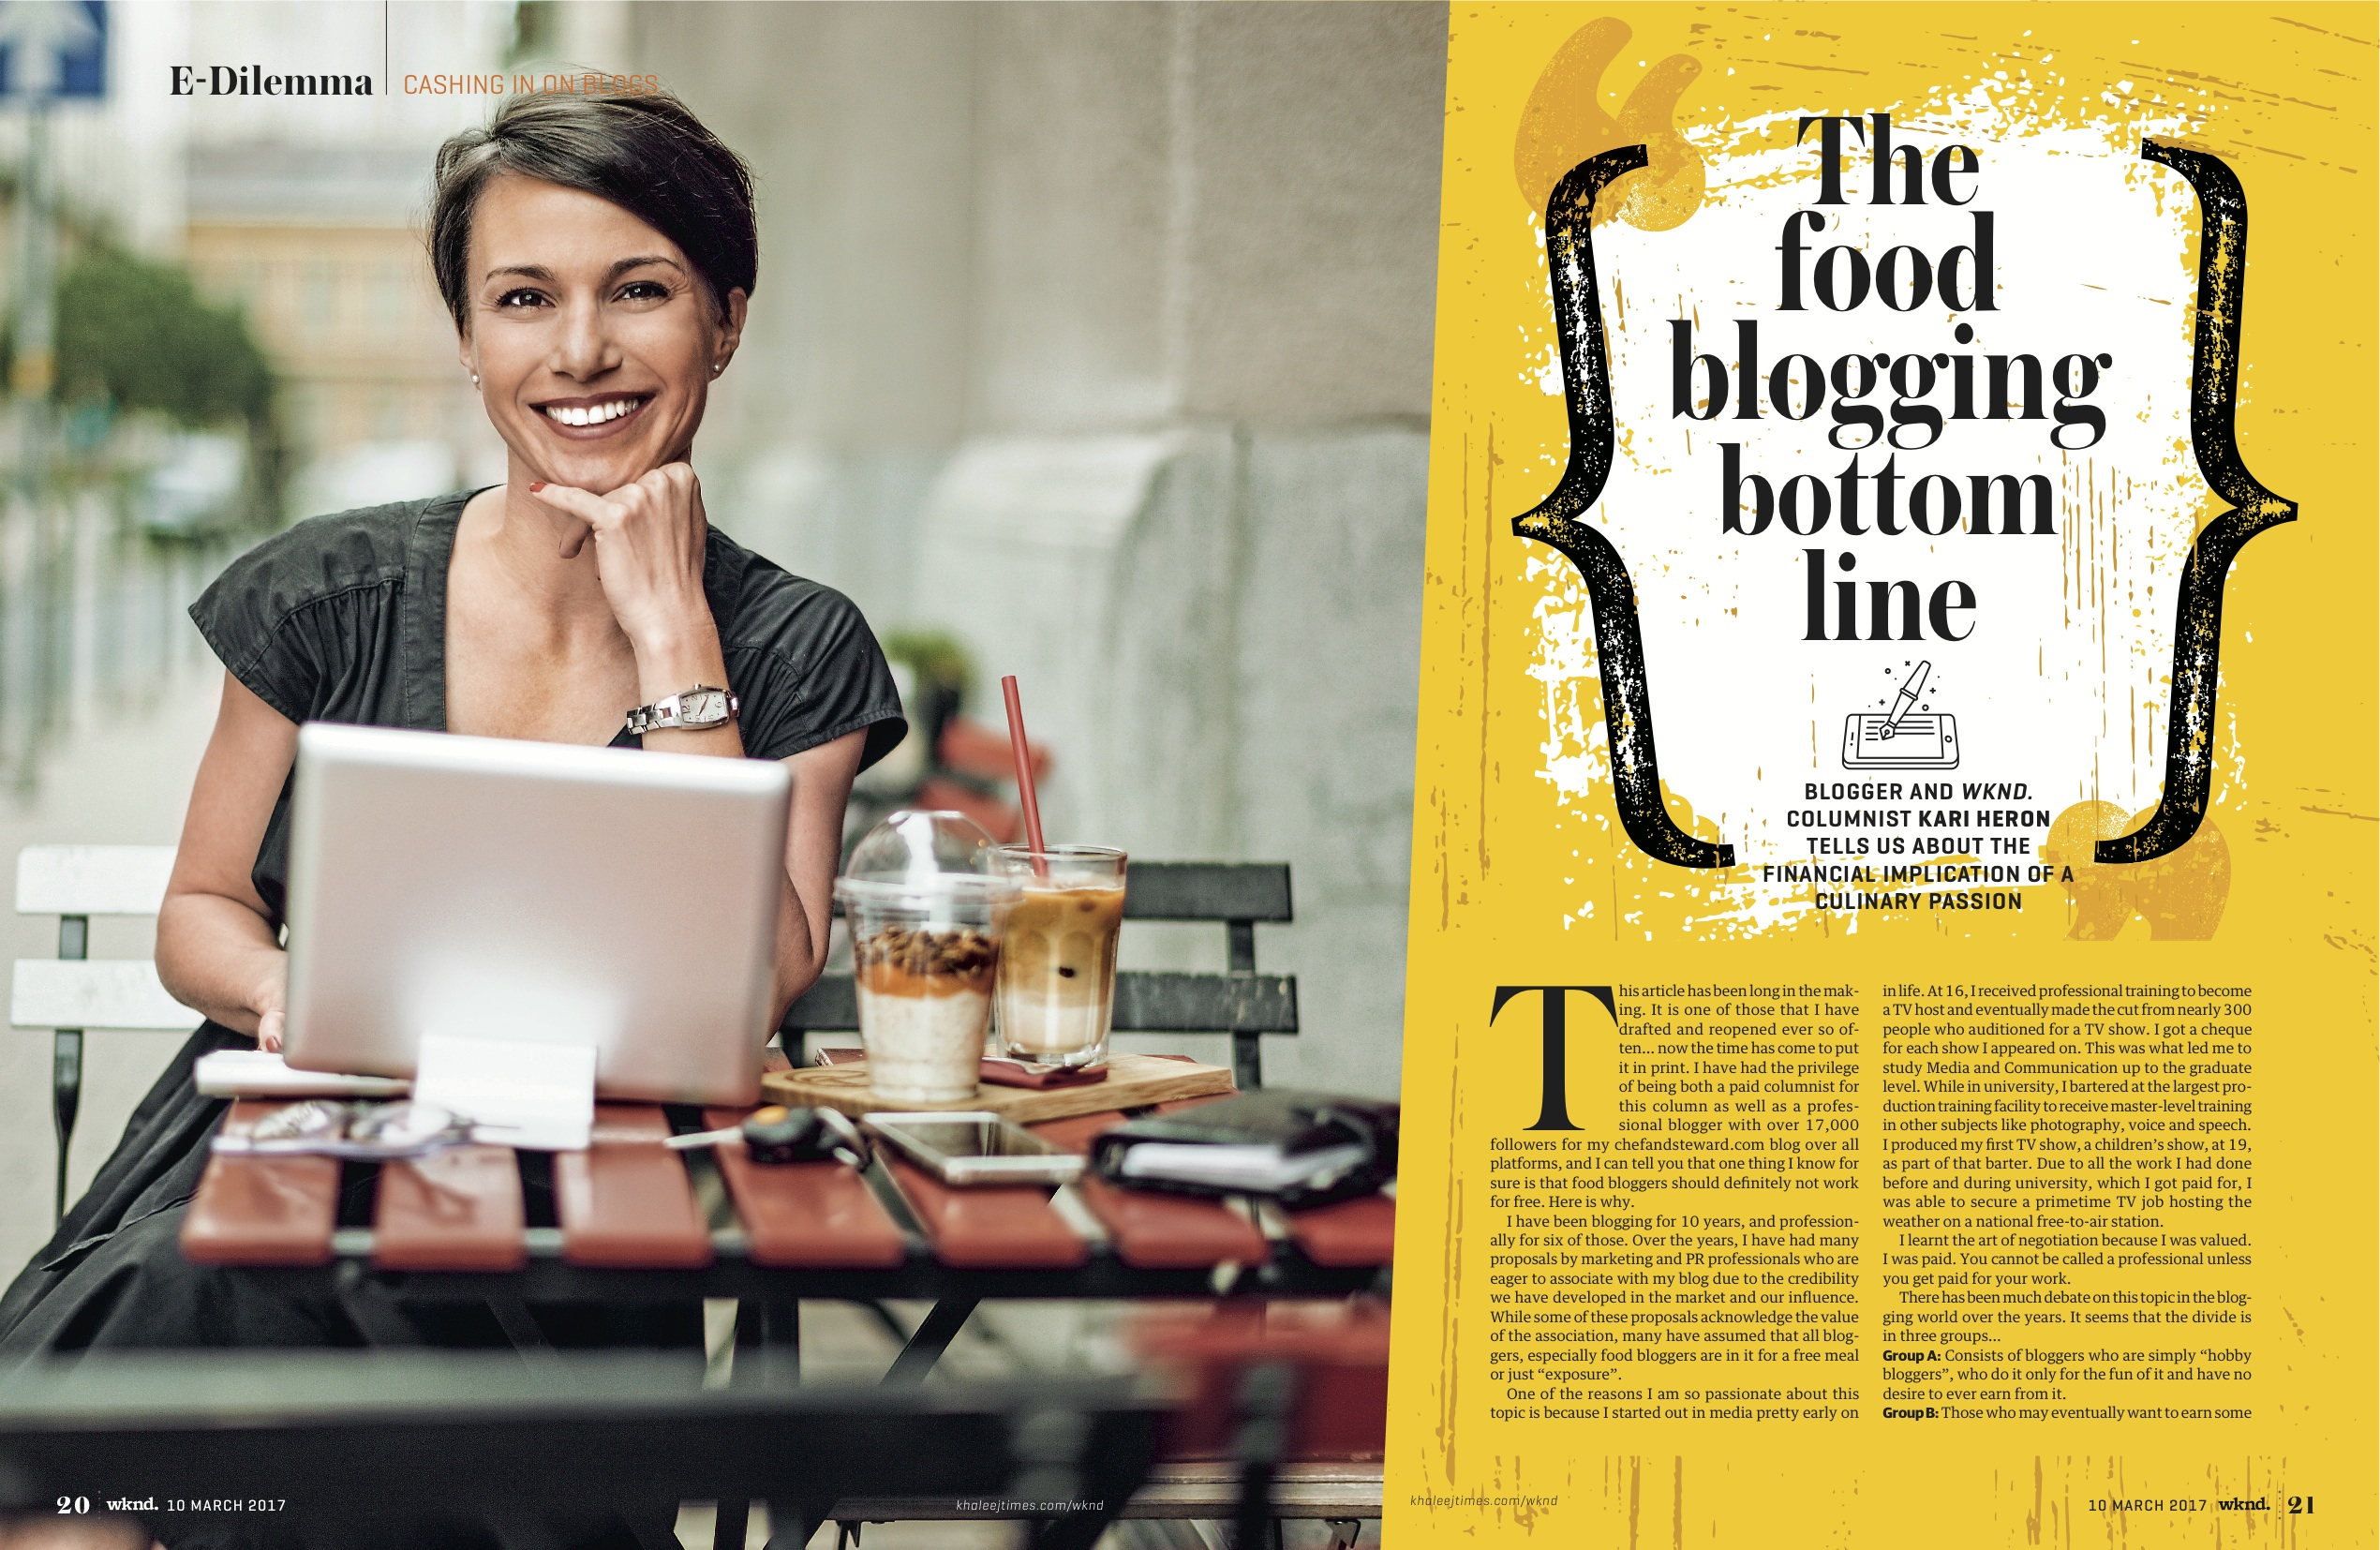 food bloggers blogging for free bloggers to get paid My cover story in the Khaleej Times WKND magazine